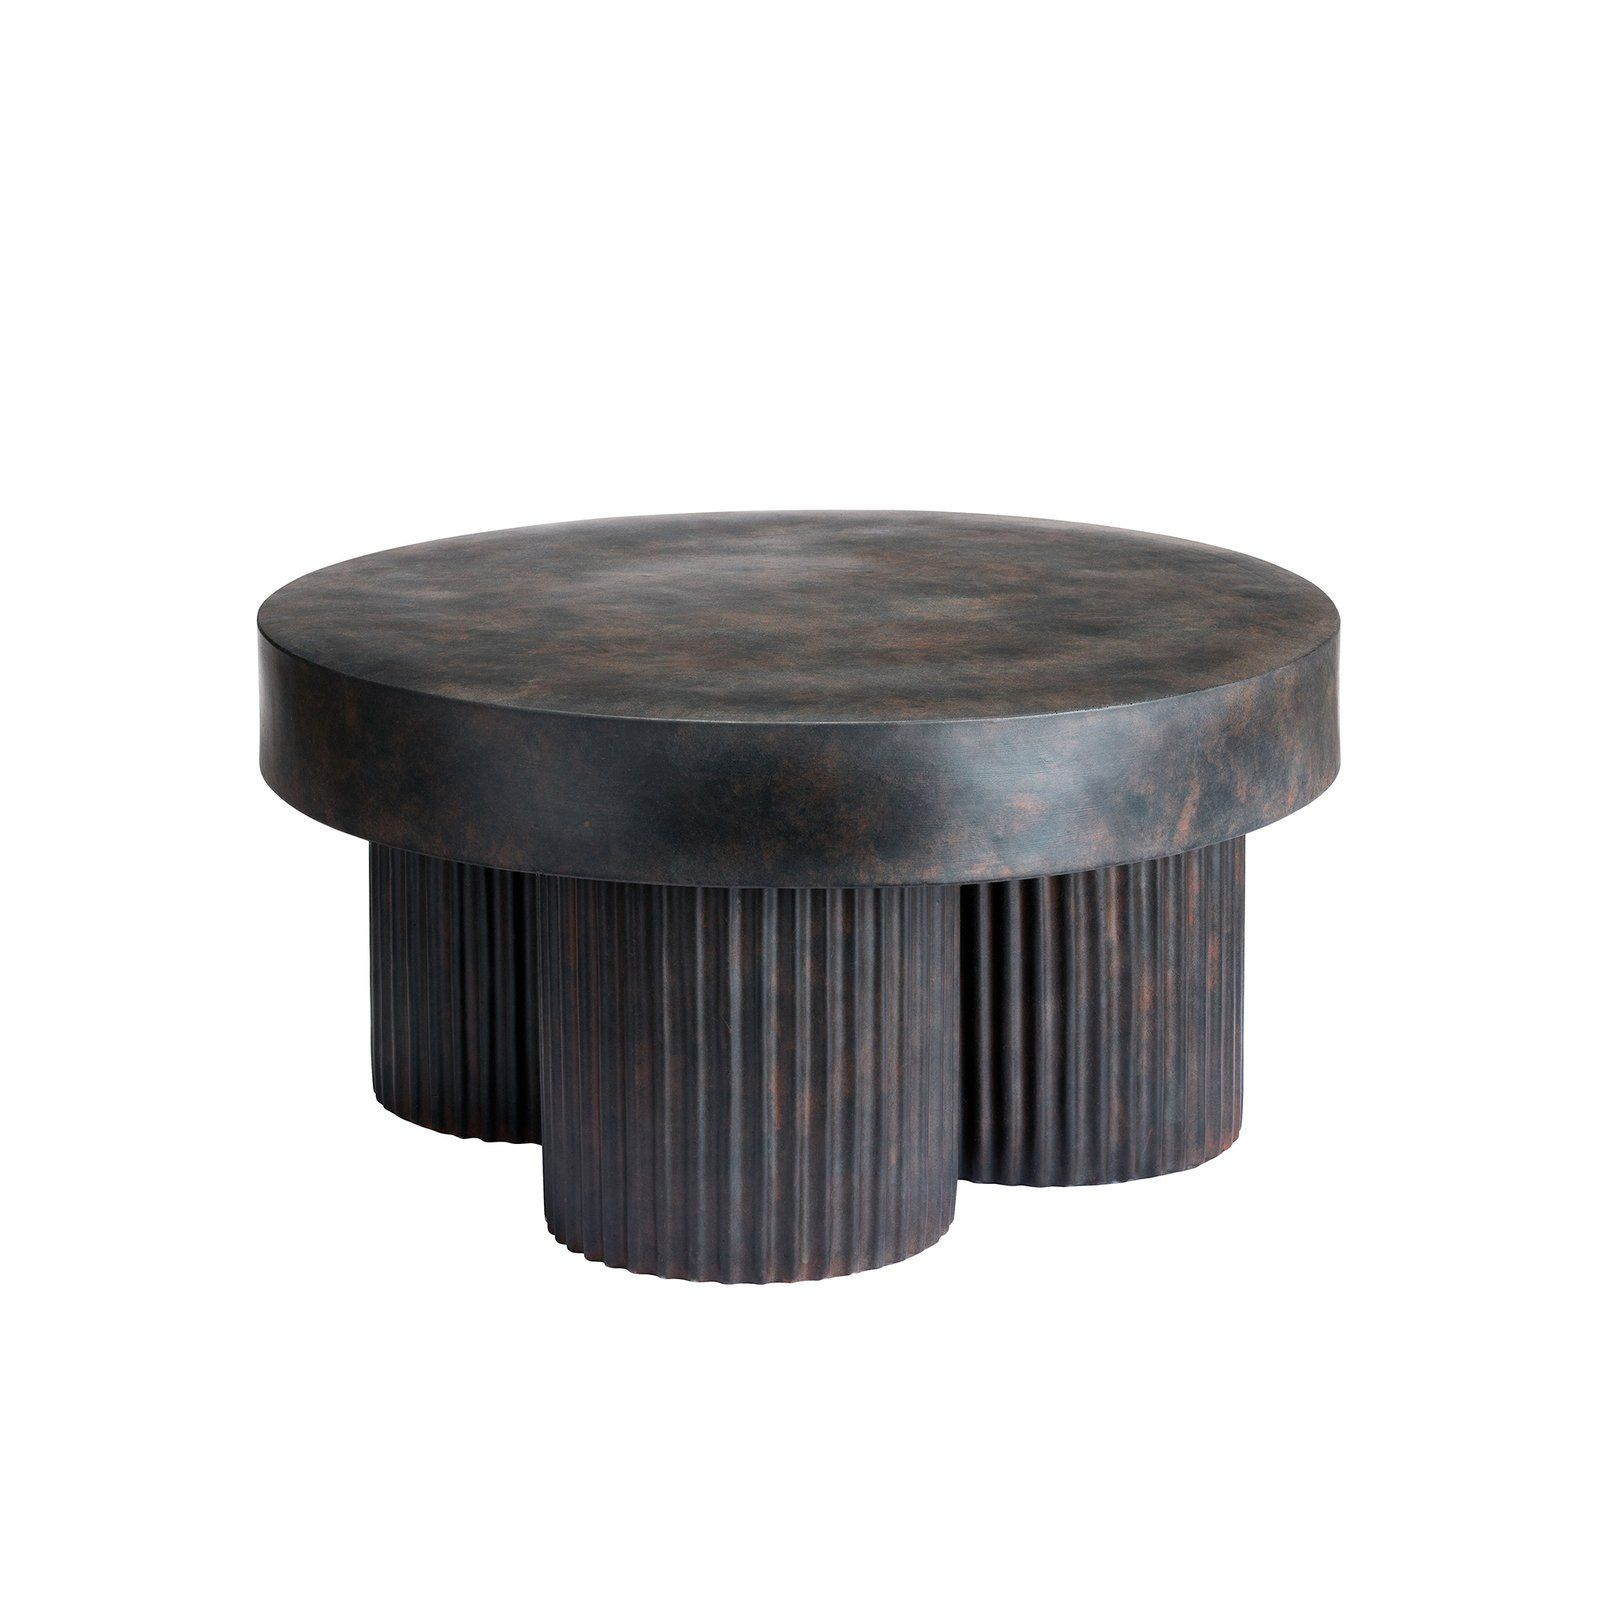 Gear Coffee Table Low Round Glass Coffee Table Coffee Table Scandinavian Coffee Table [ 1600 x 1600 Pixel ]